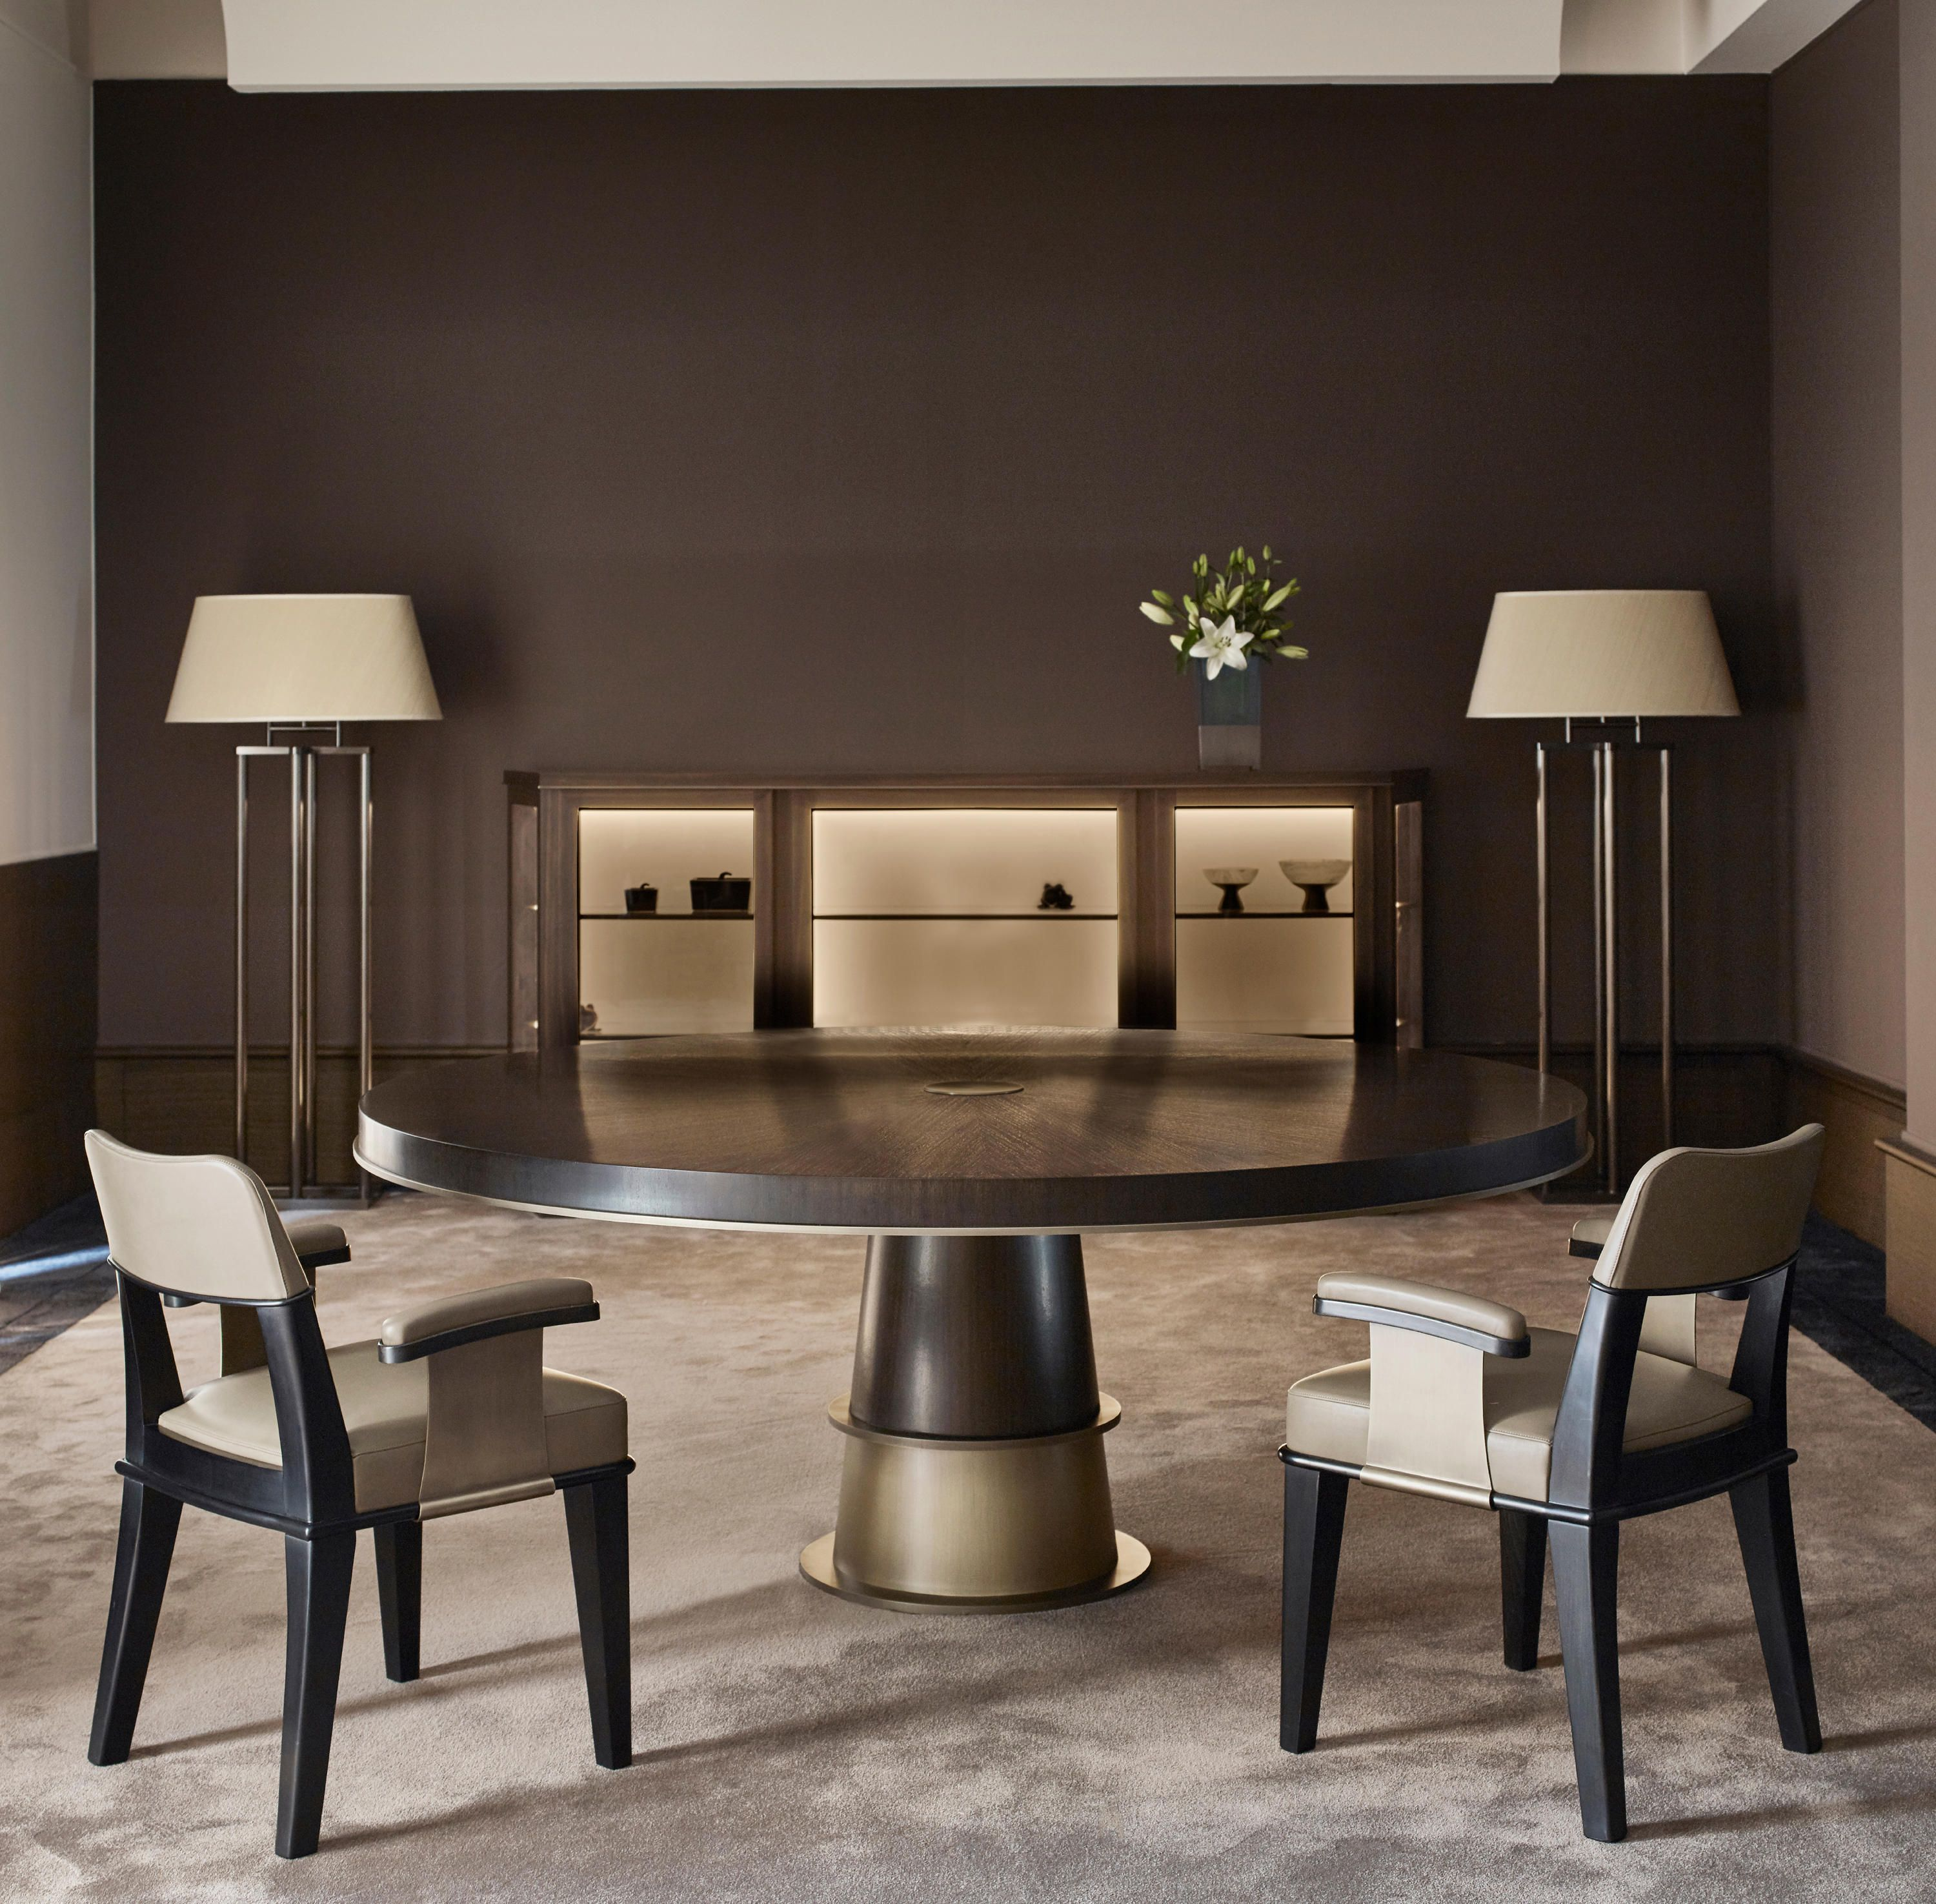 Tornasole Dining Table Designer Dining Tables From Promemoria All Information High Resolution Images Cads